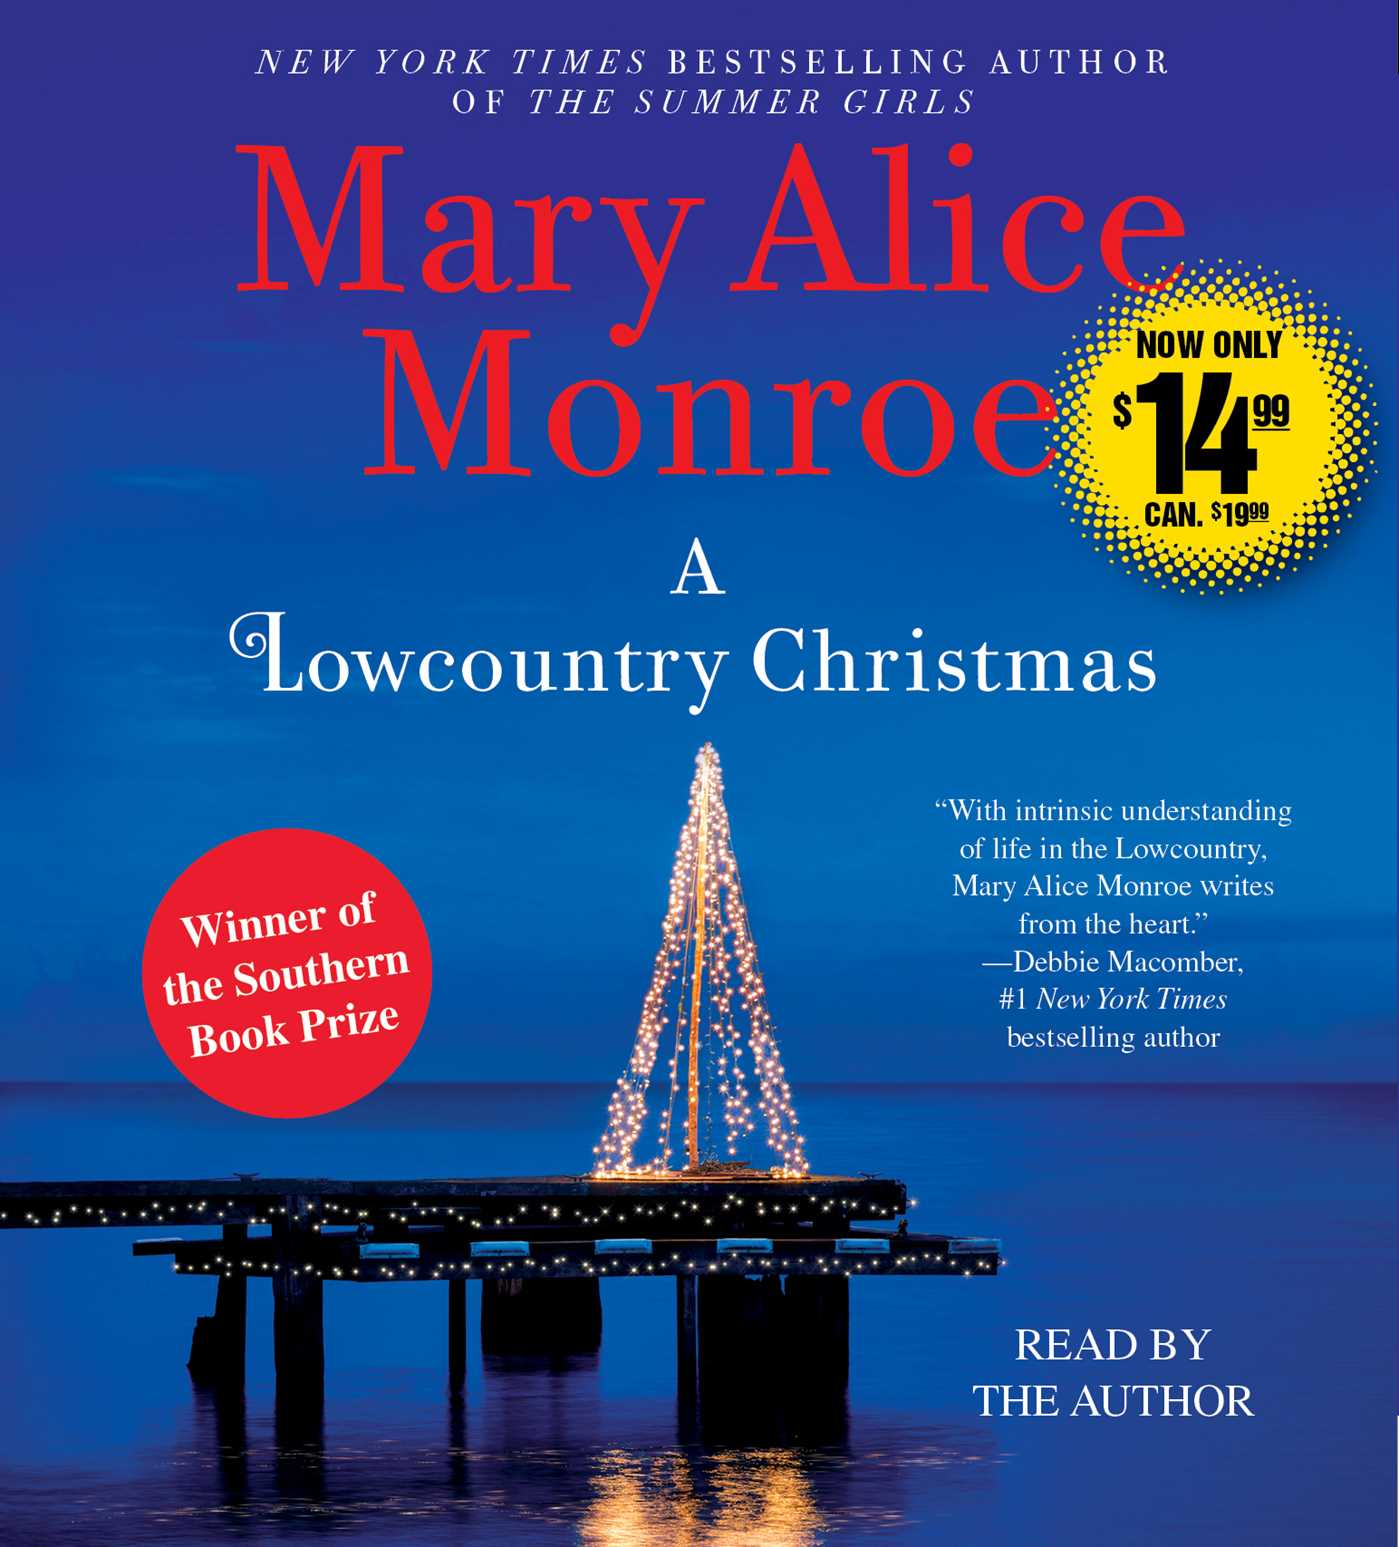 A lowcountry christmas 9781508239581 hr